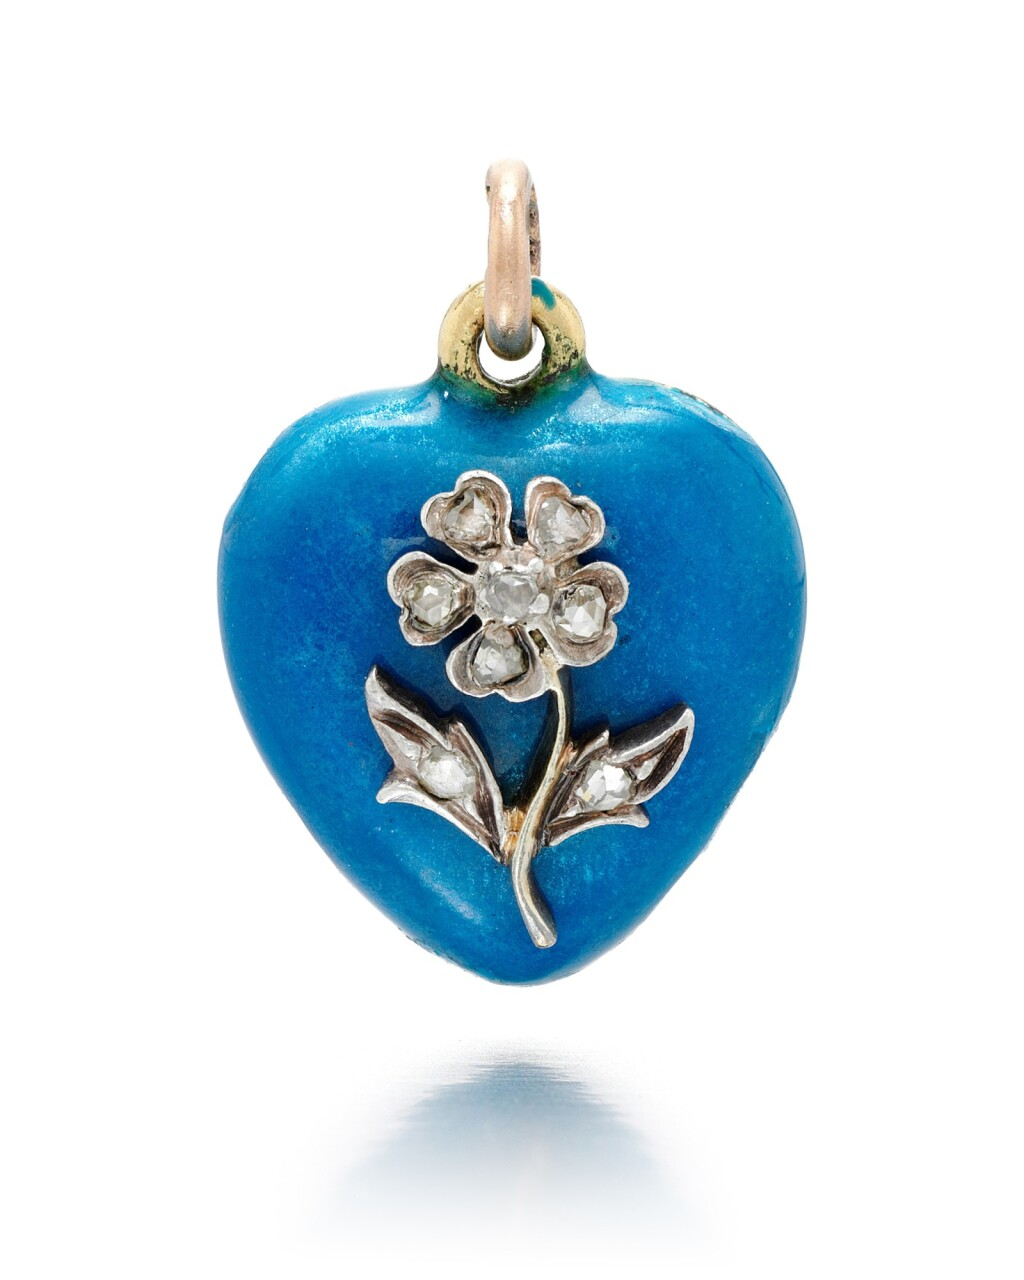 A JEWELLED GOLD AND ENAMEL HEART-SHAPED PENDANT, ST PETERSBURG, 1899-1903